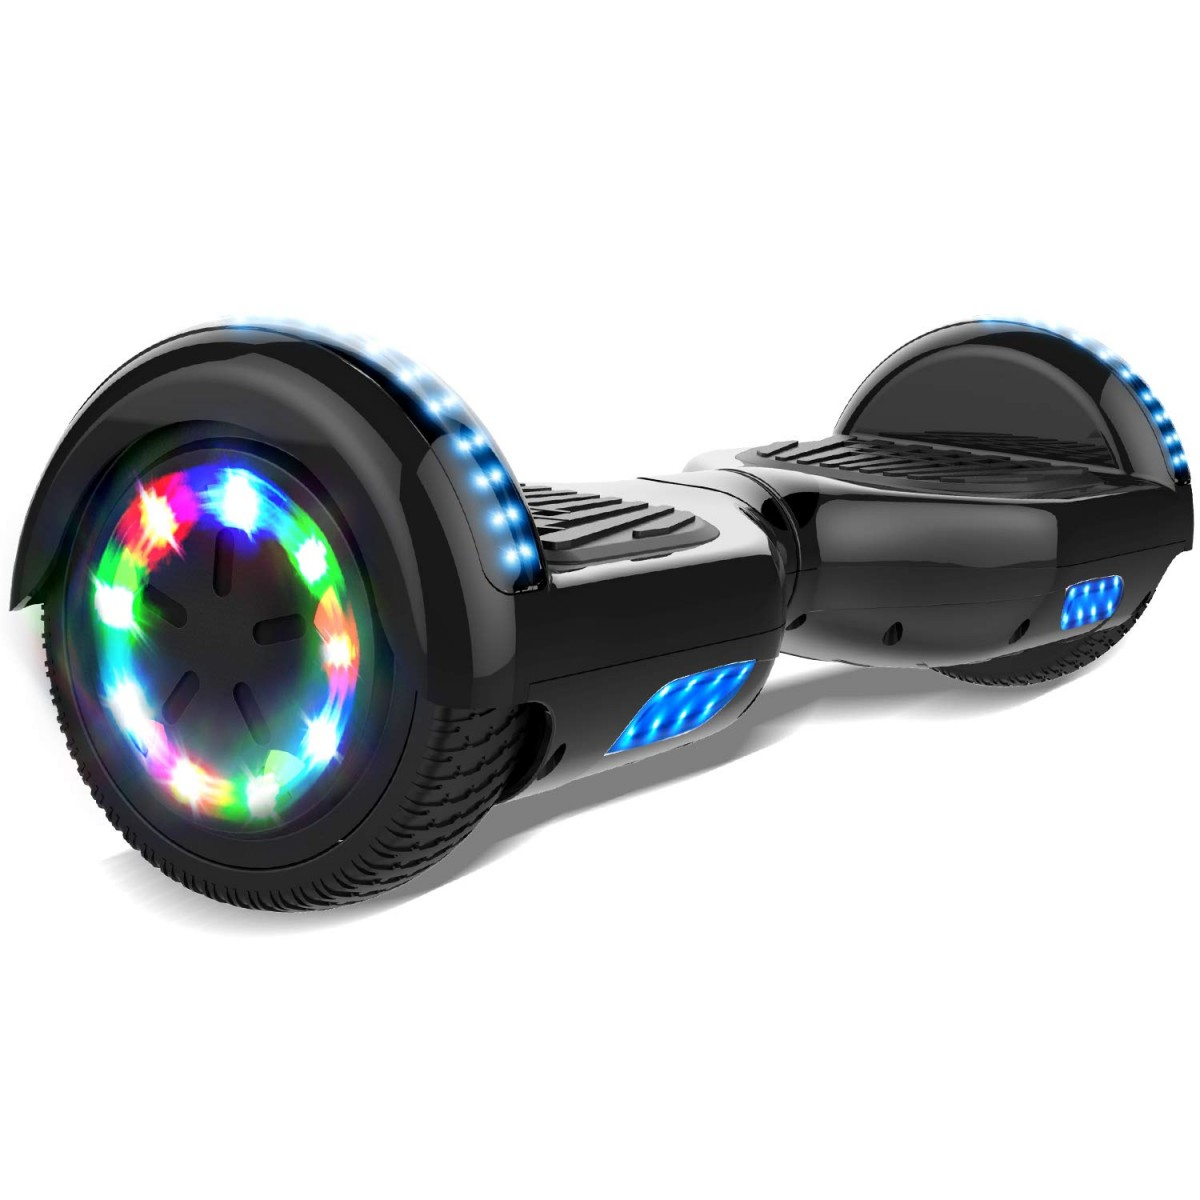 Hunter-Hoverboard-65 Double Hunter Hoverboard 6.5